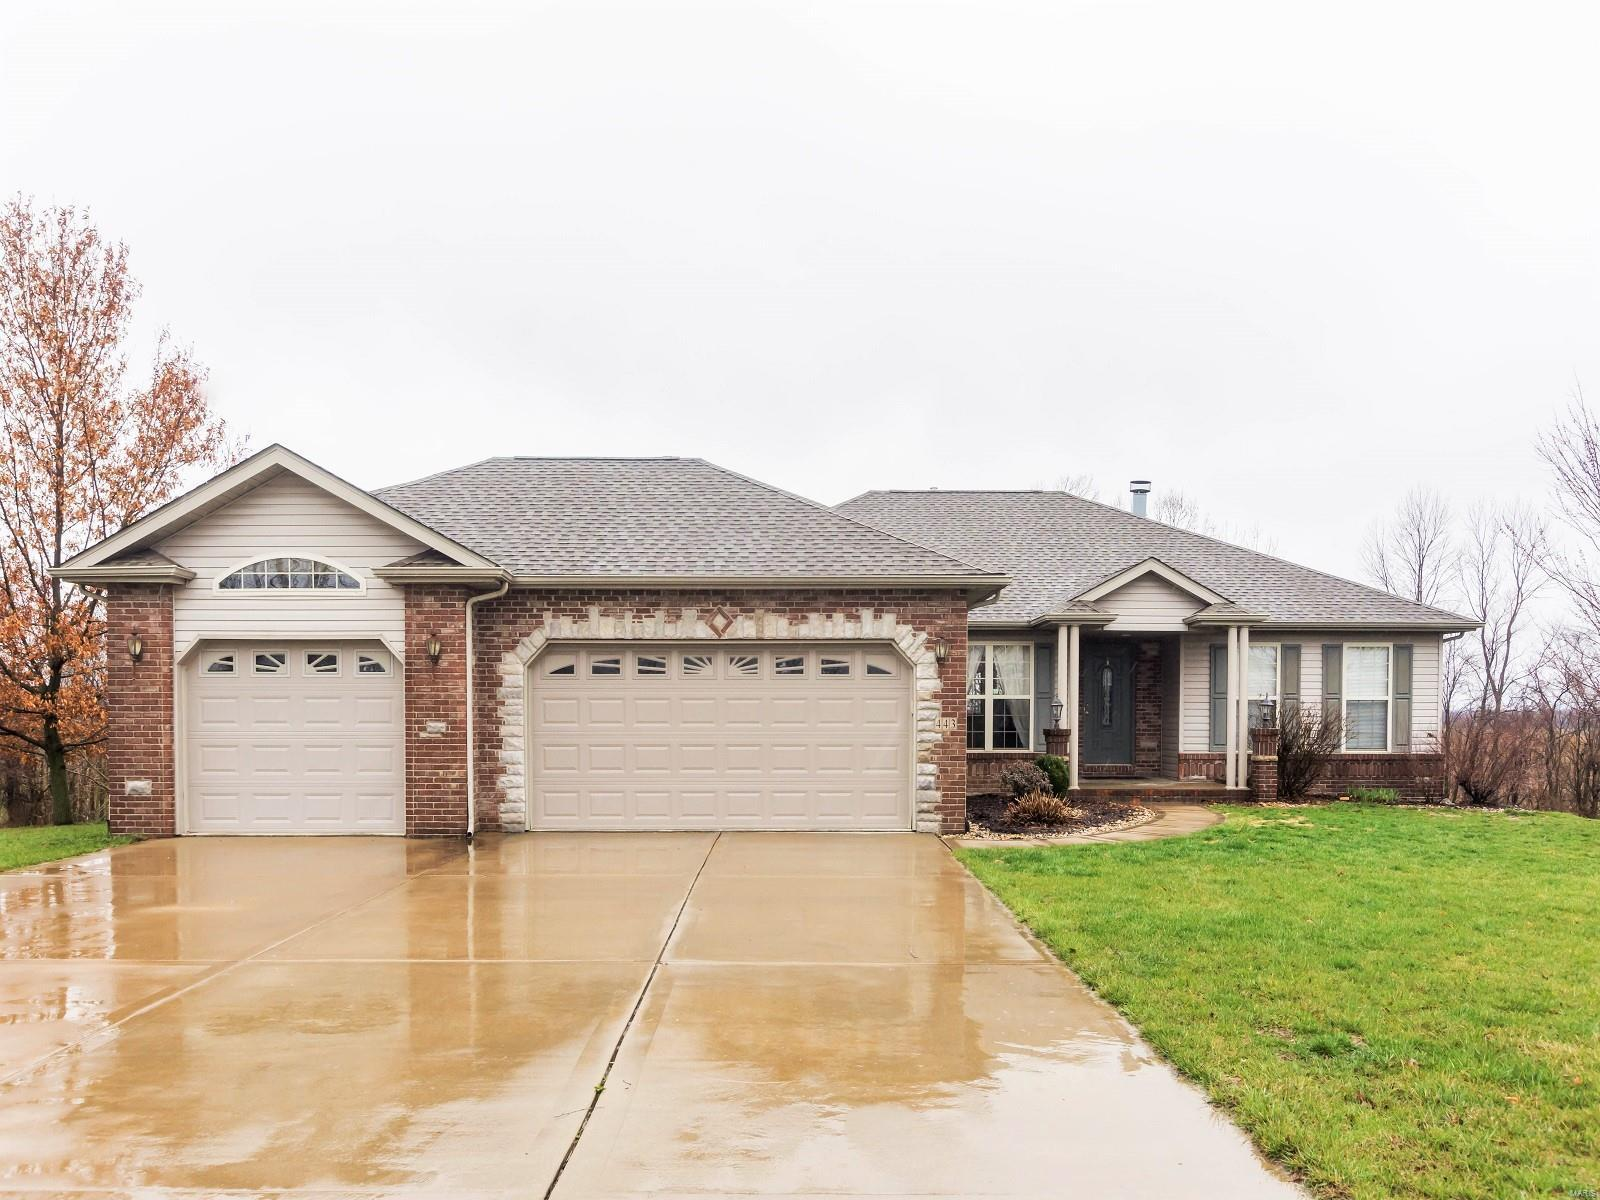 Local Real Estate: Homes for Sale — St Jacob, IL — Coldwell Banker